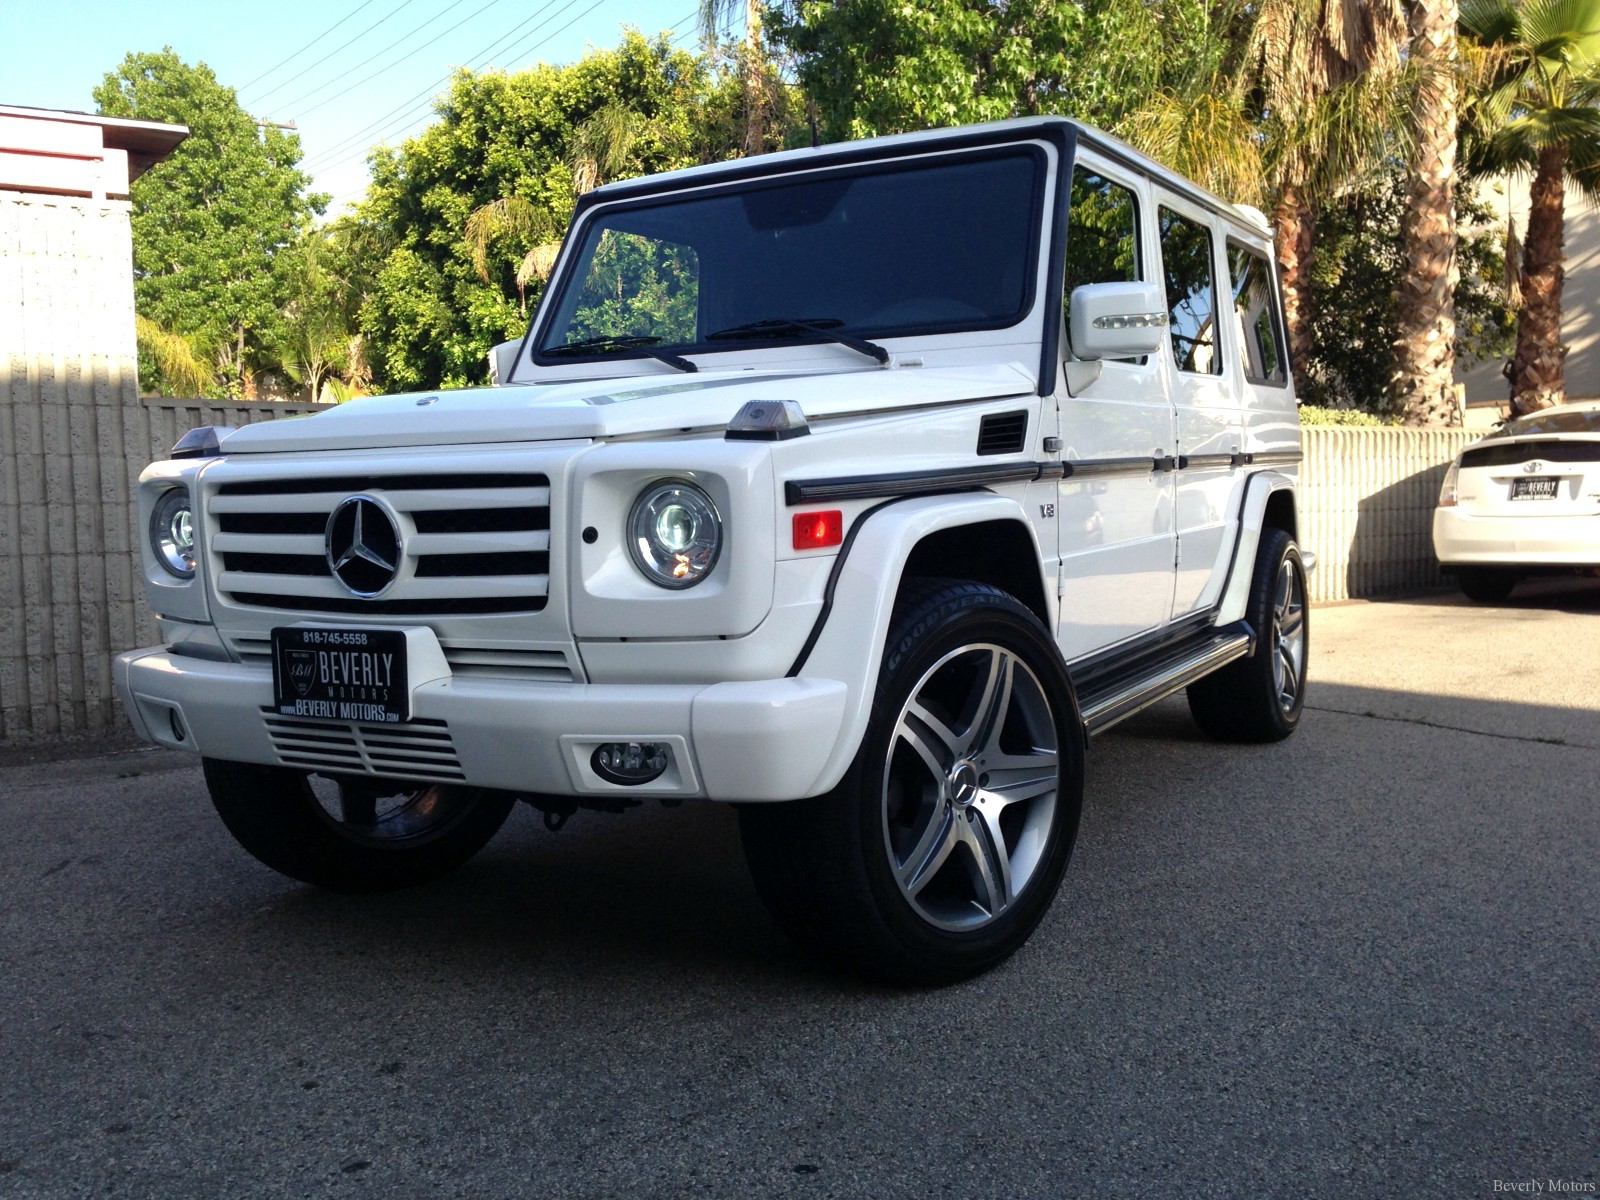 Images of G Wagon For Sale - #rock-cafe